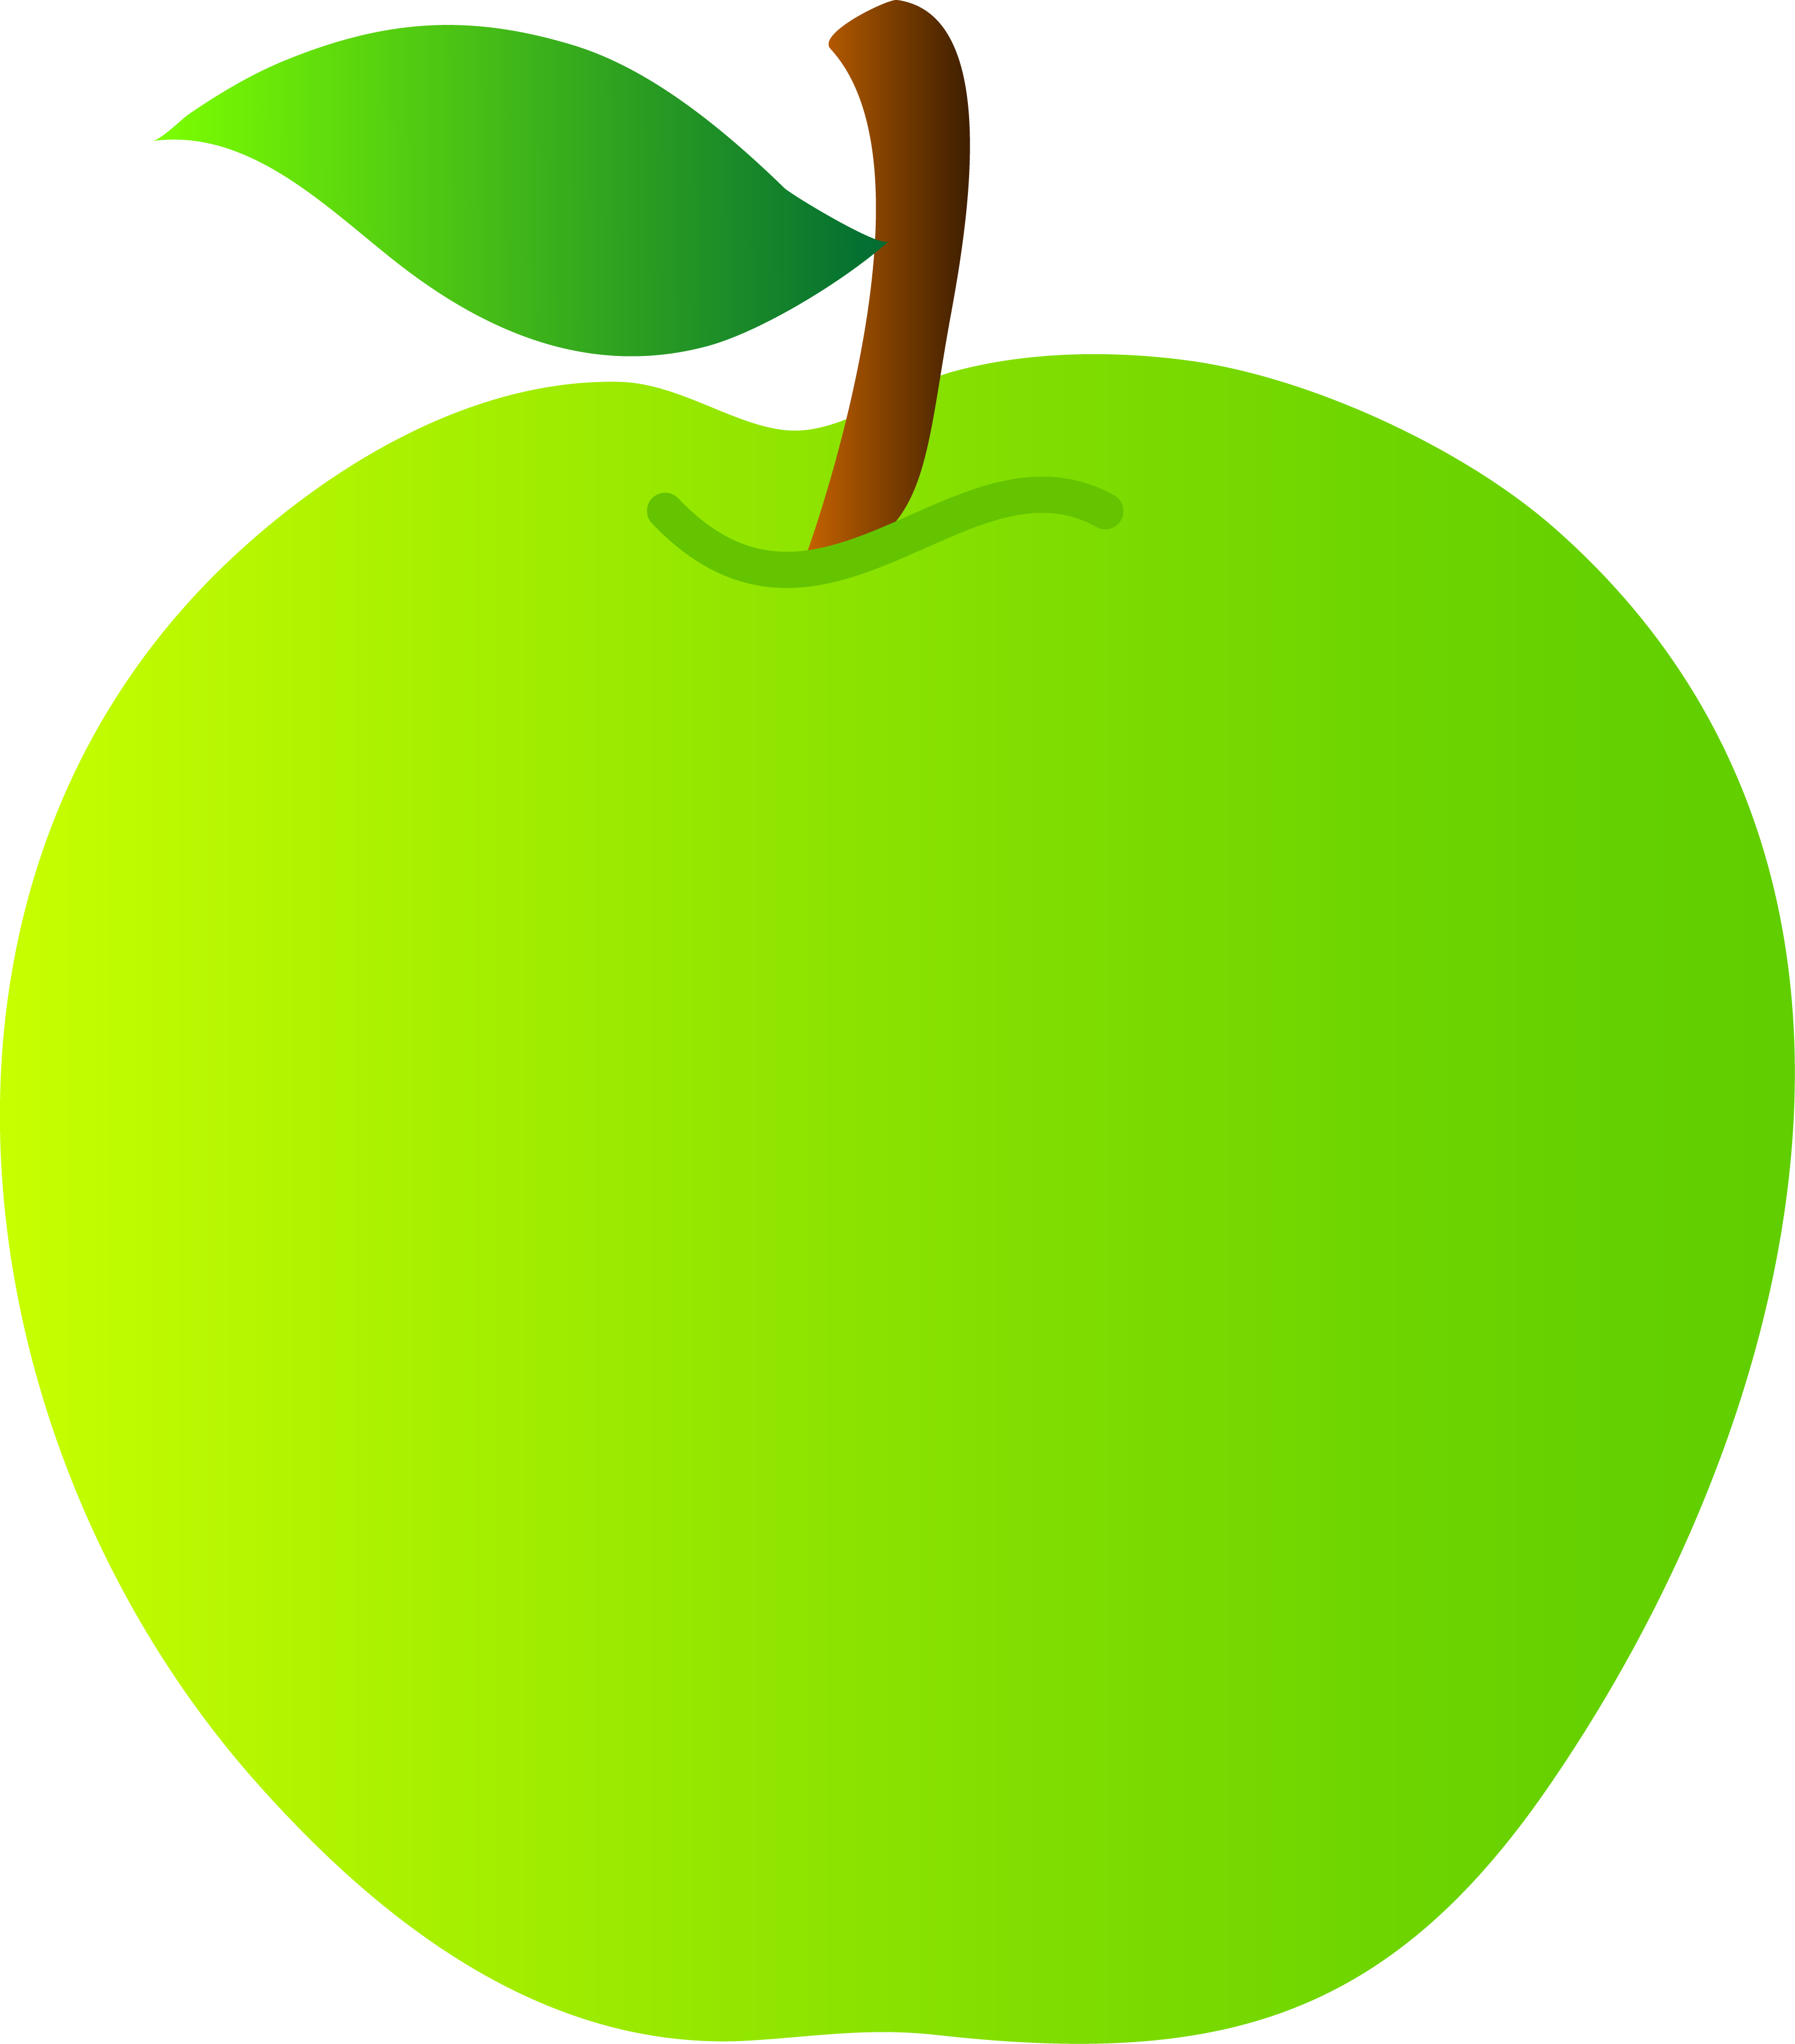 Green apple clipart png.